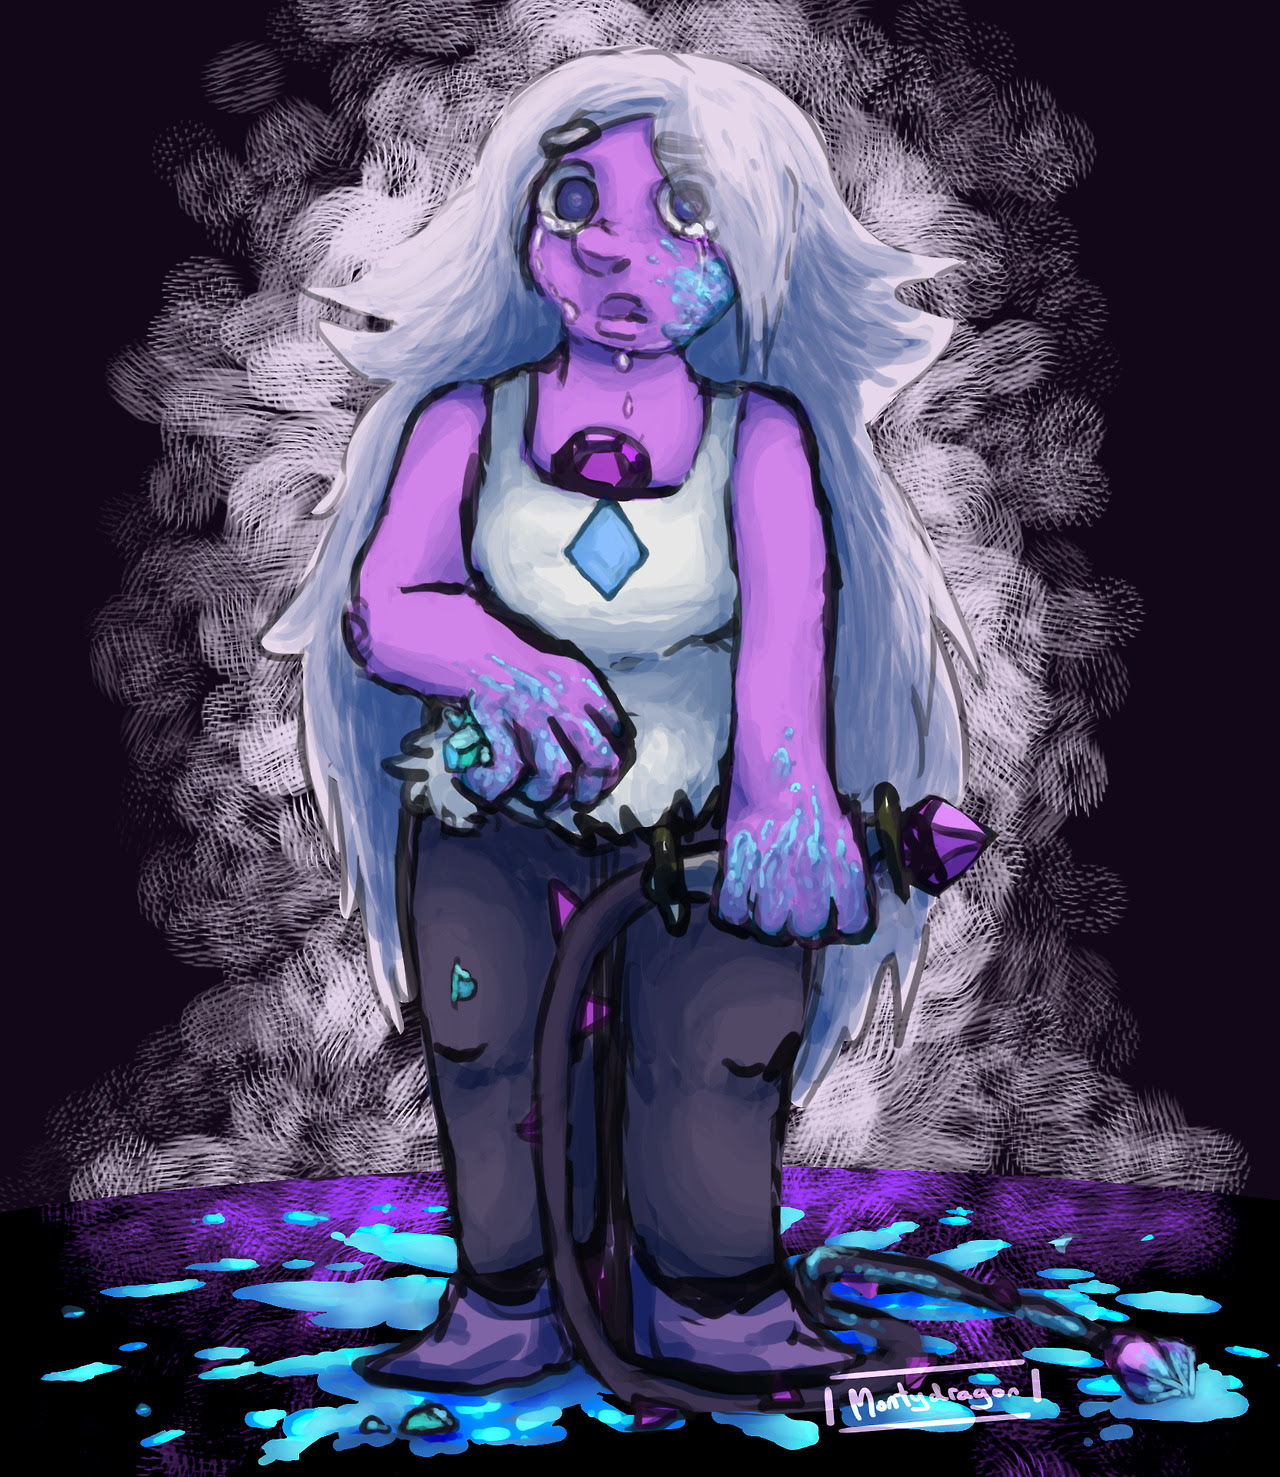 D'ya ever just remember that Amethyst was supposed to be a ruthless soldier